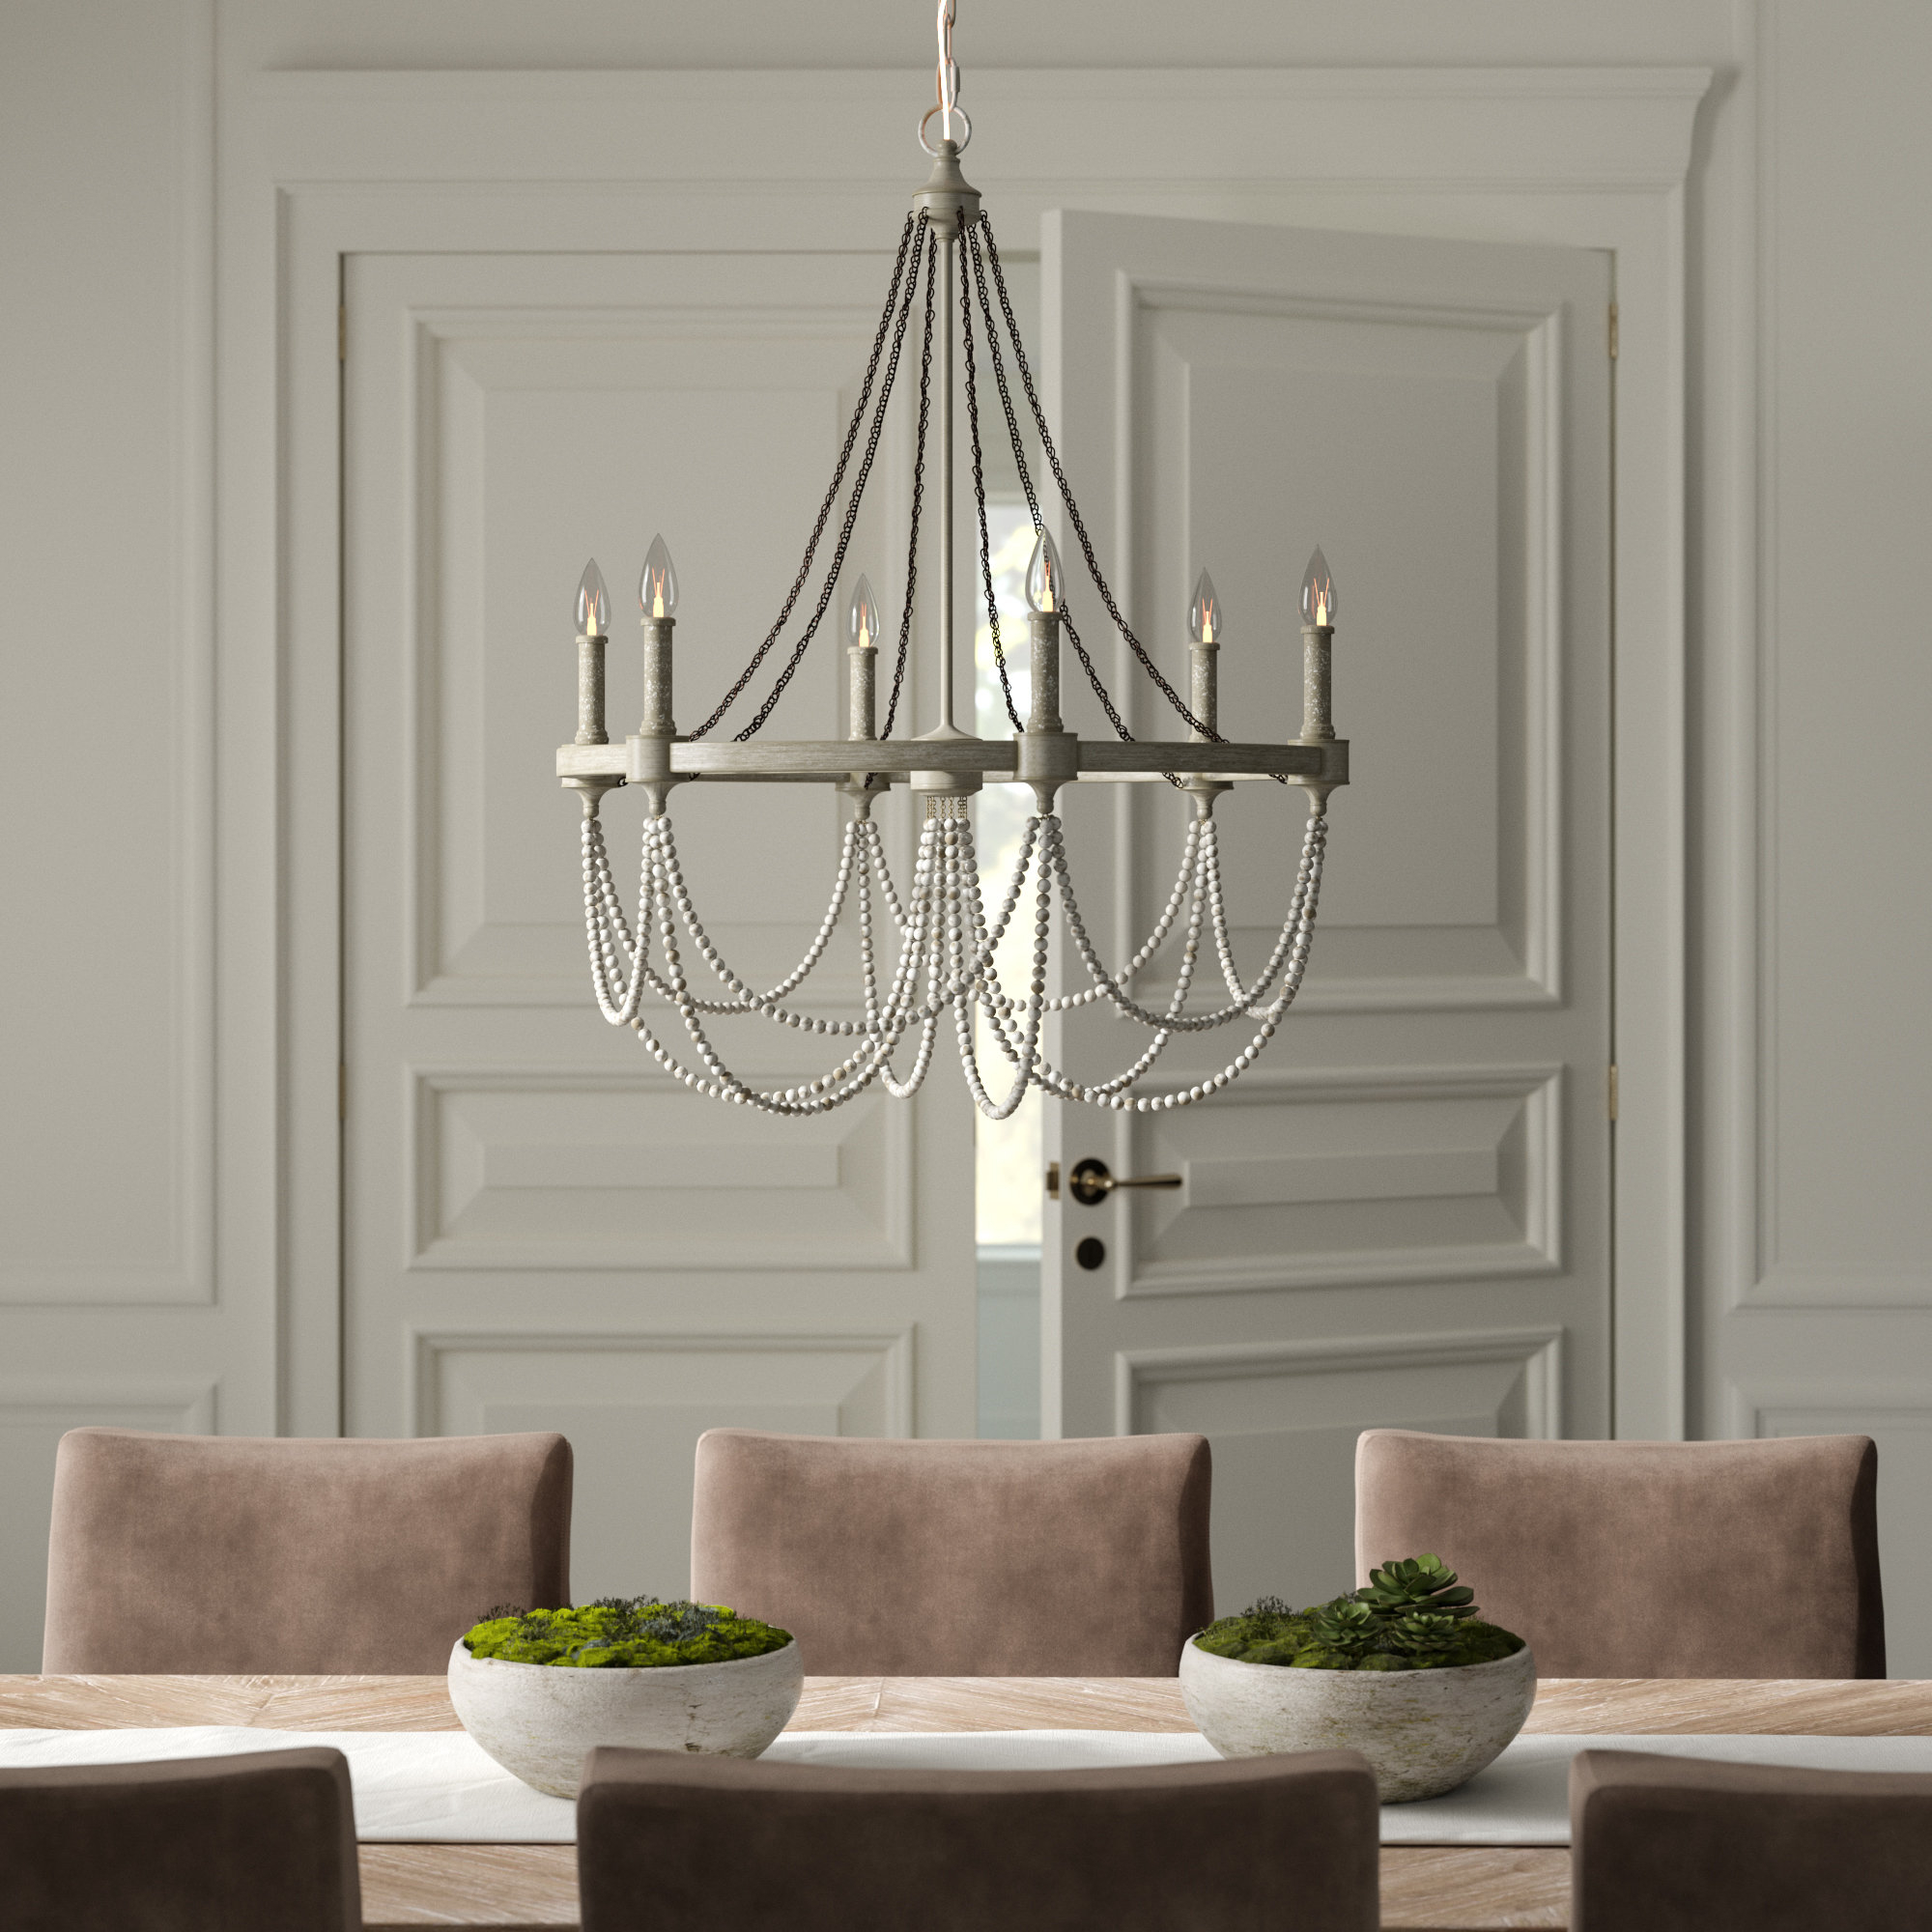 Bouchette Traditional 6-Light Candle Style Chandeliers for Well known Greyleigh Alliance 6-Light Candle Style Chandelier